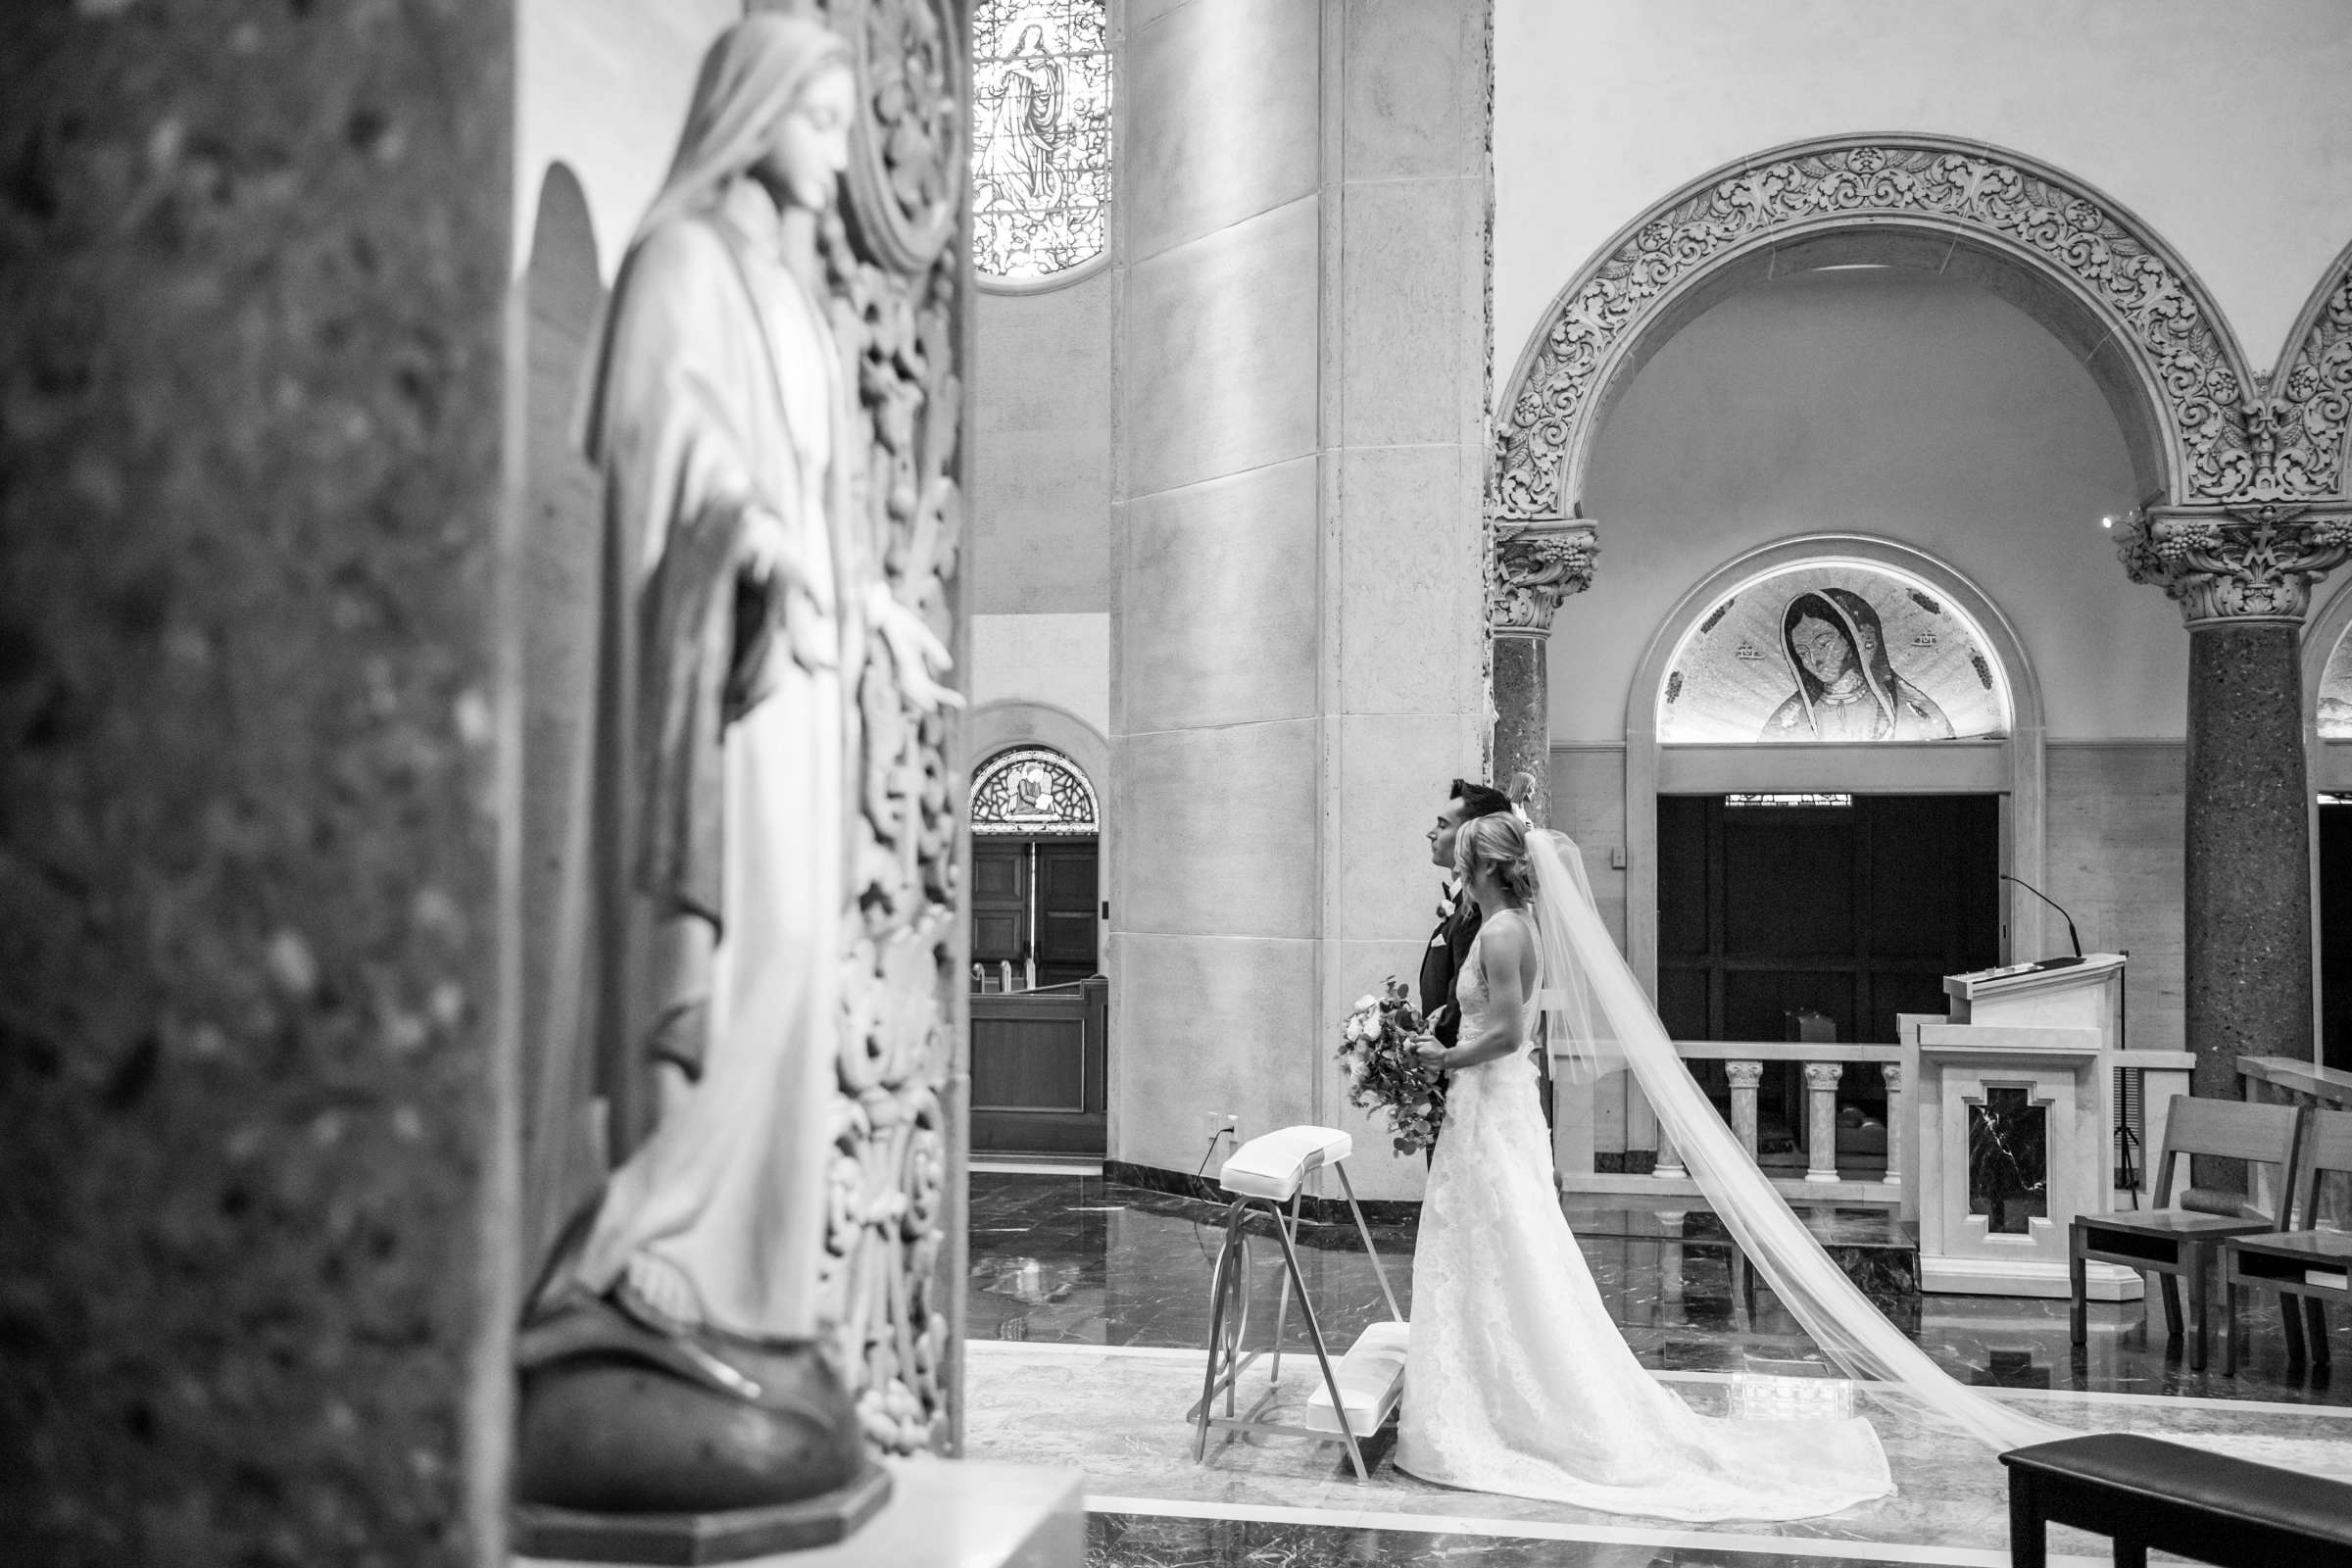 The Prado Wedding coordinated by Bliss Events, Sara and Marvin Wedding Photo #559538 by True Photography